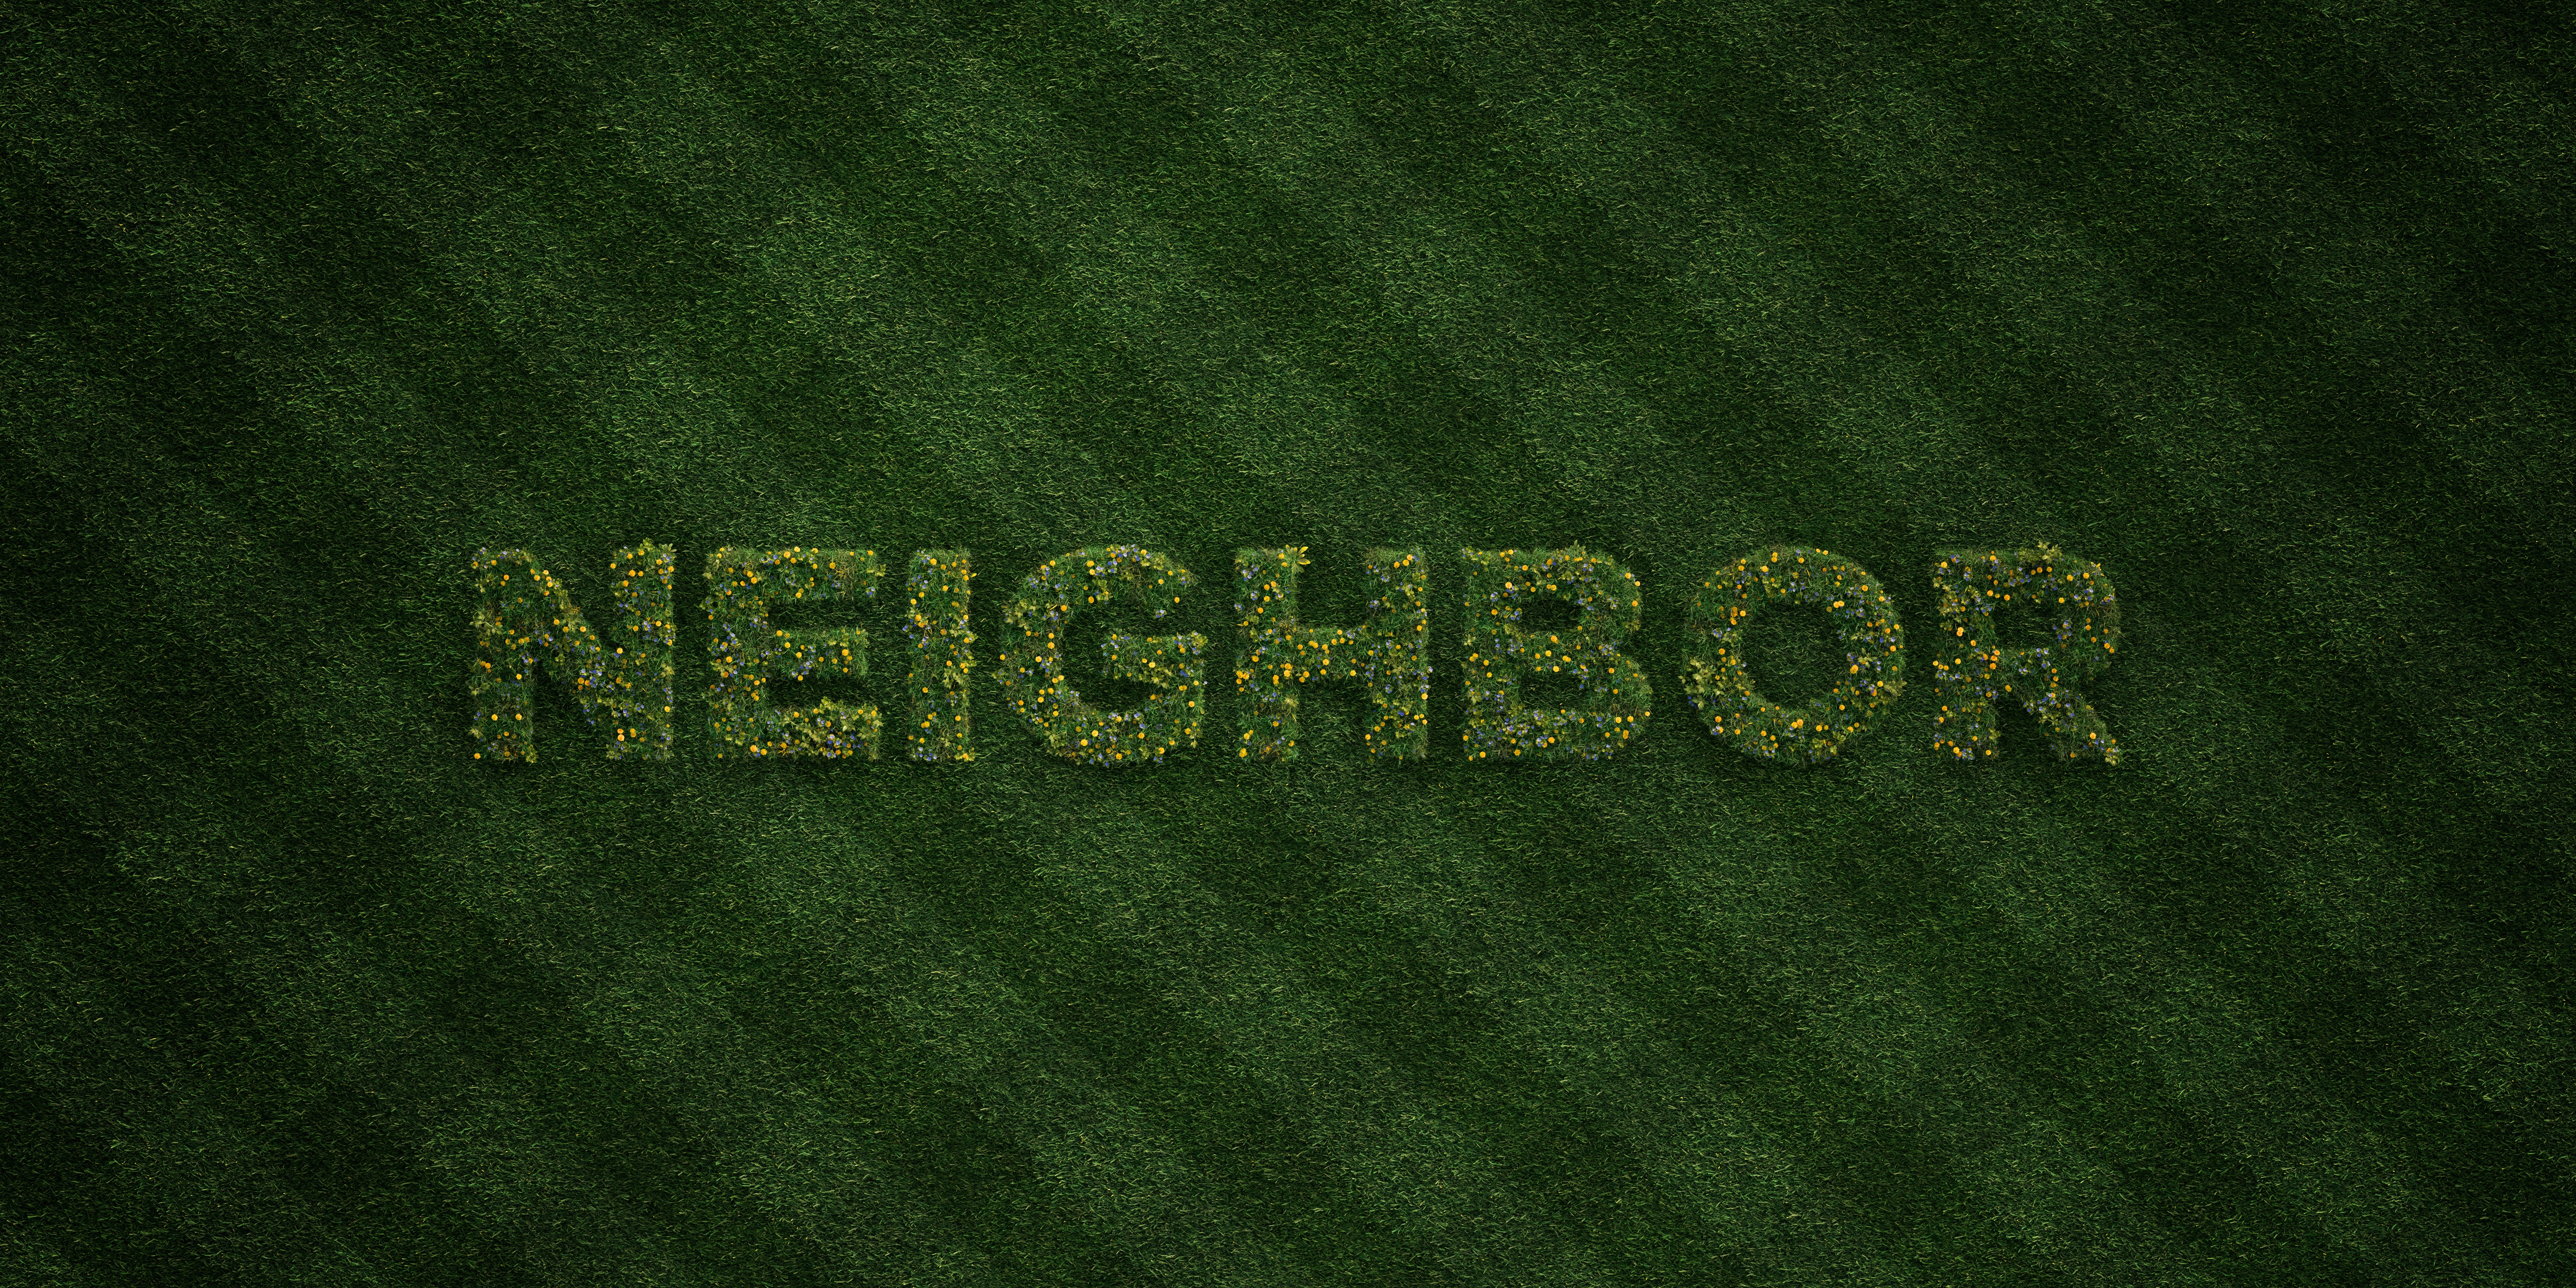 Caring About Our Neighbors As Expected >> If You Do Not Love Your Neighbor Whom You Can See Can You